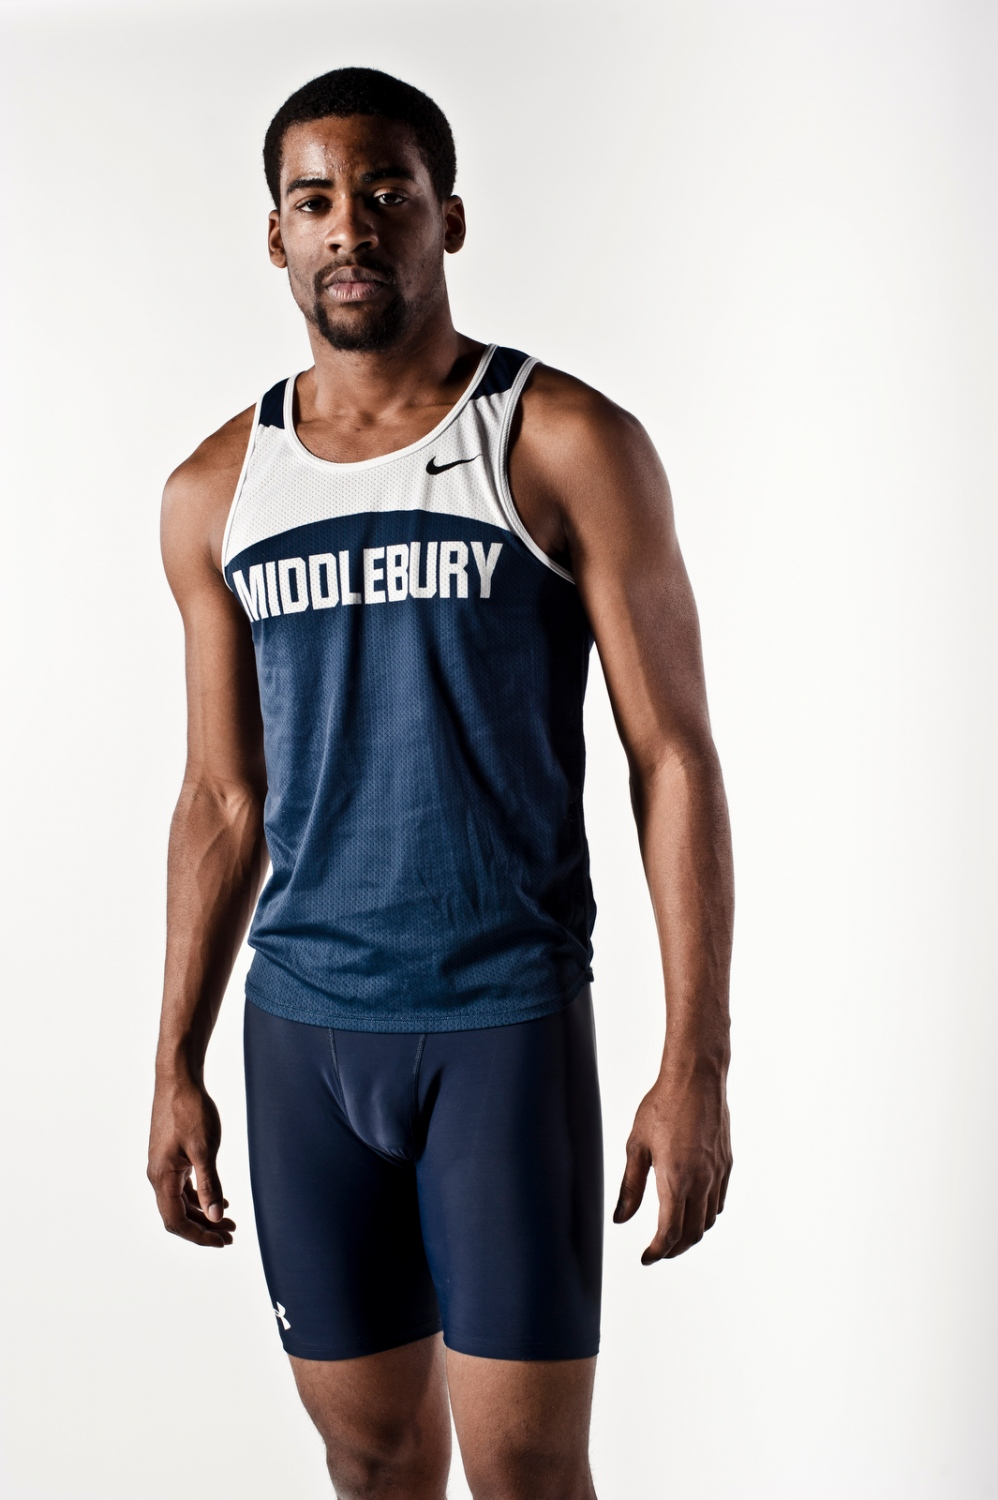 Track athlete, Middlebury College, Vermont.